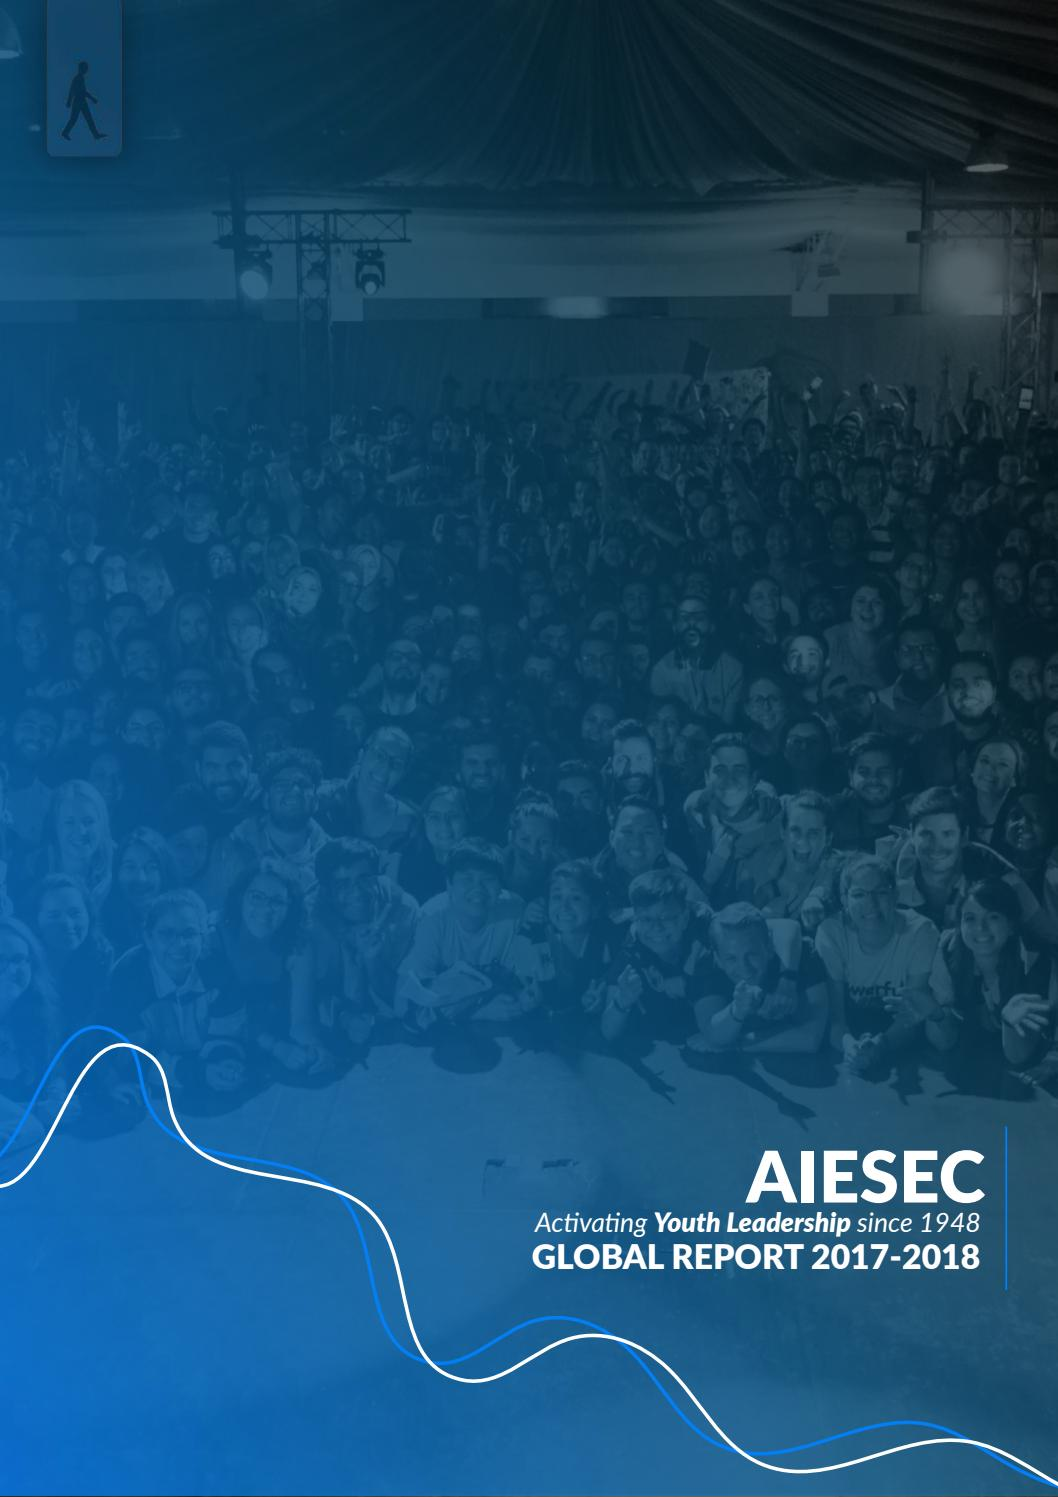 Global Annual Report 2017-2018 by AIESEC International - issuu